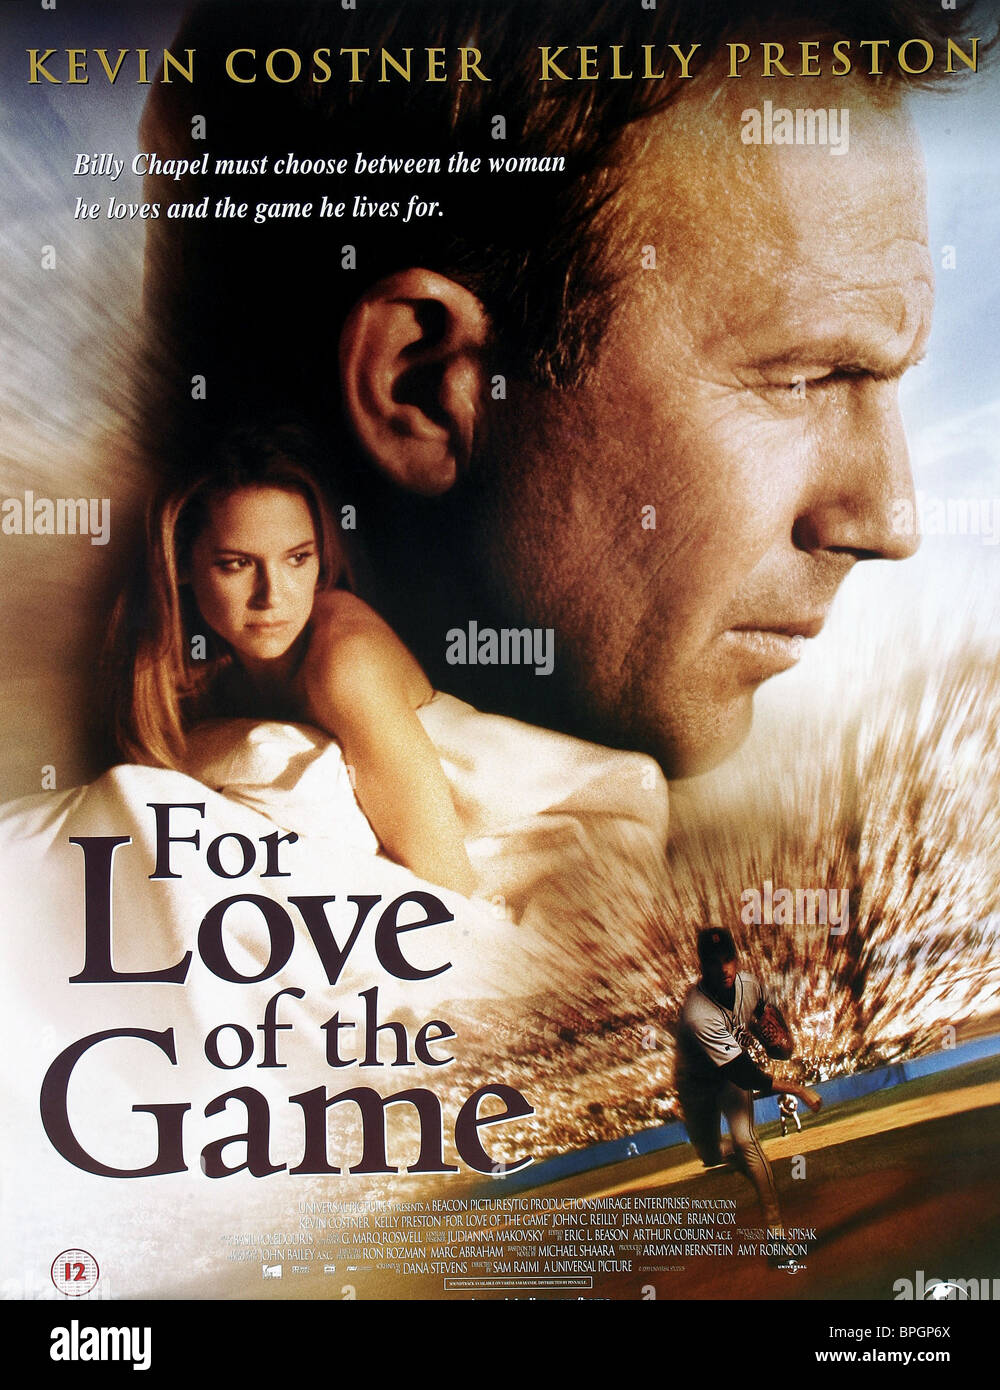 kelly preston amp kevin costner poster for love of the game